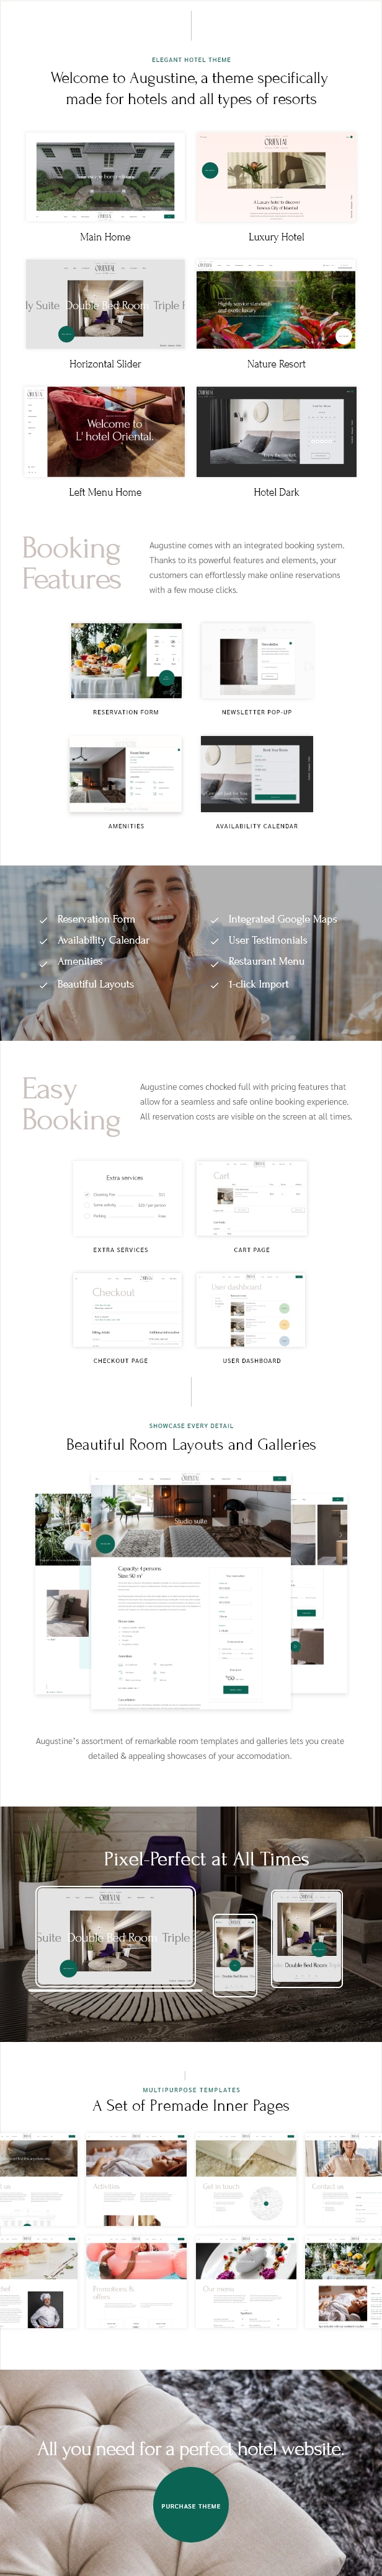 Augustine - Hotel Booking Theme - 3